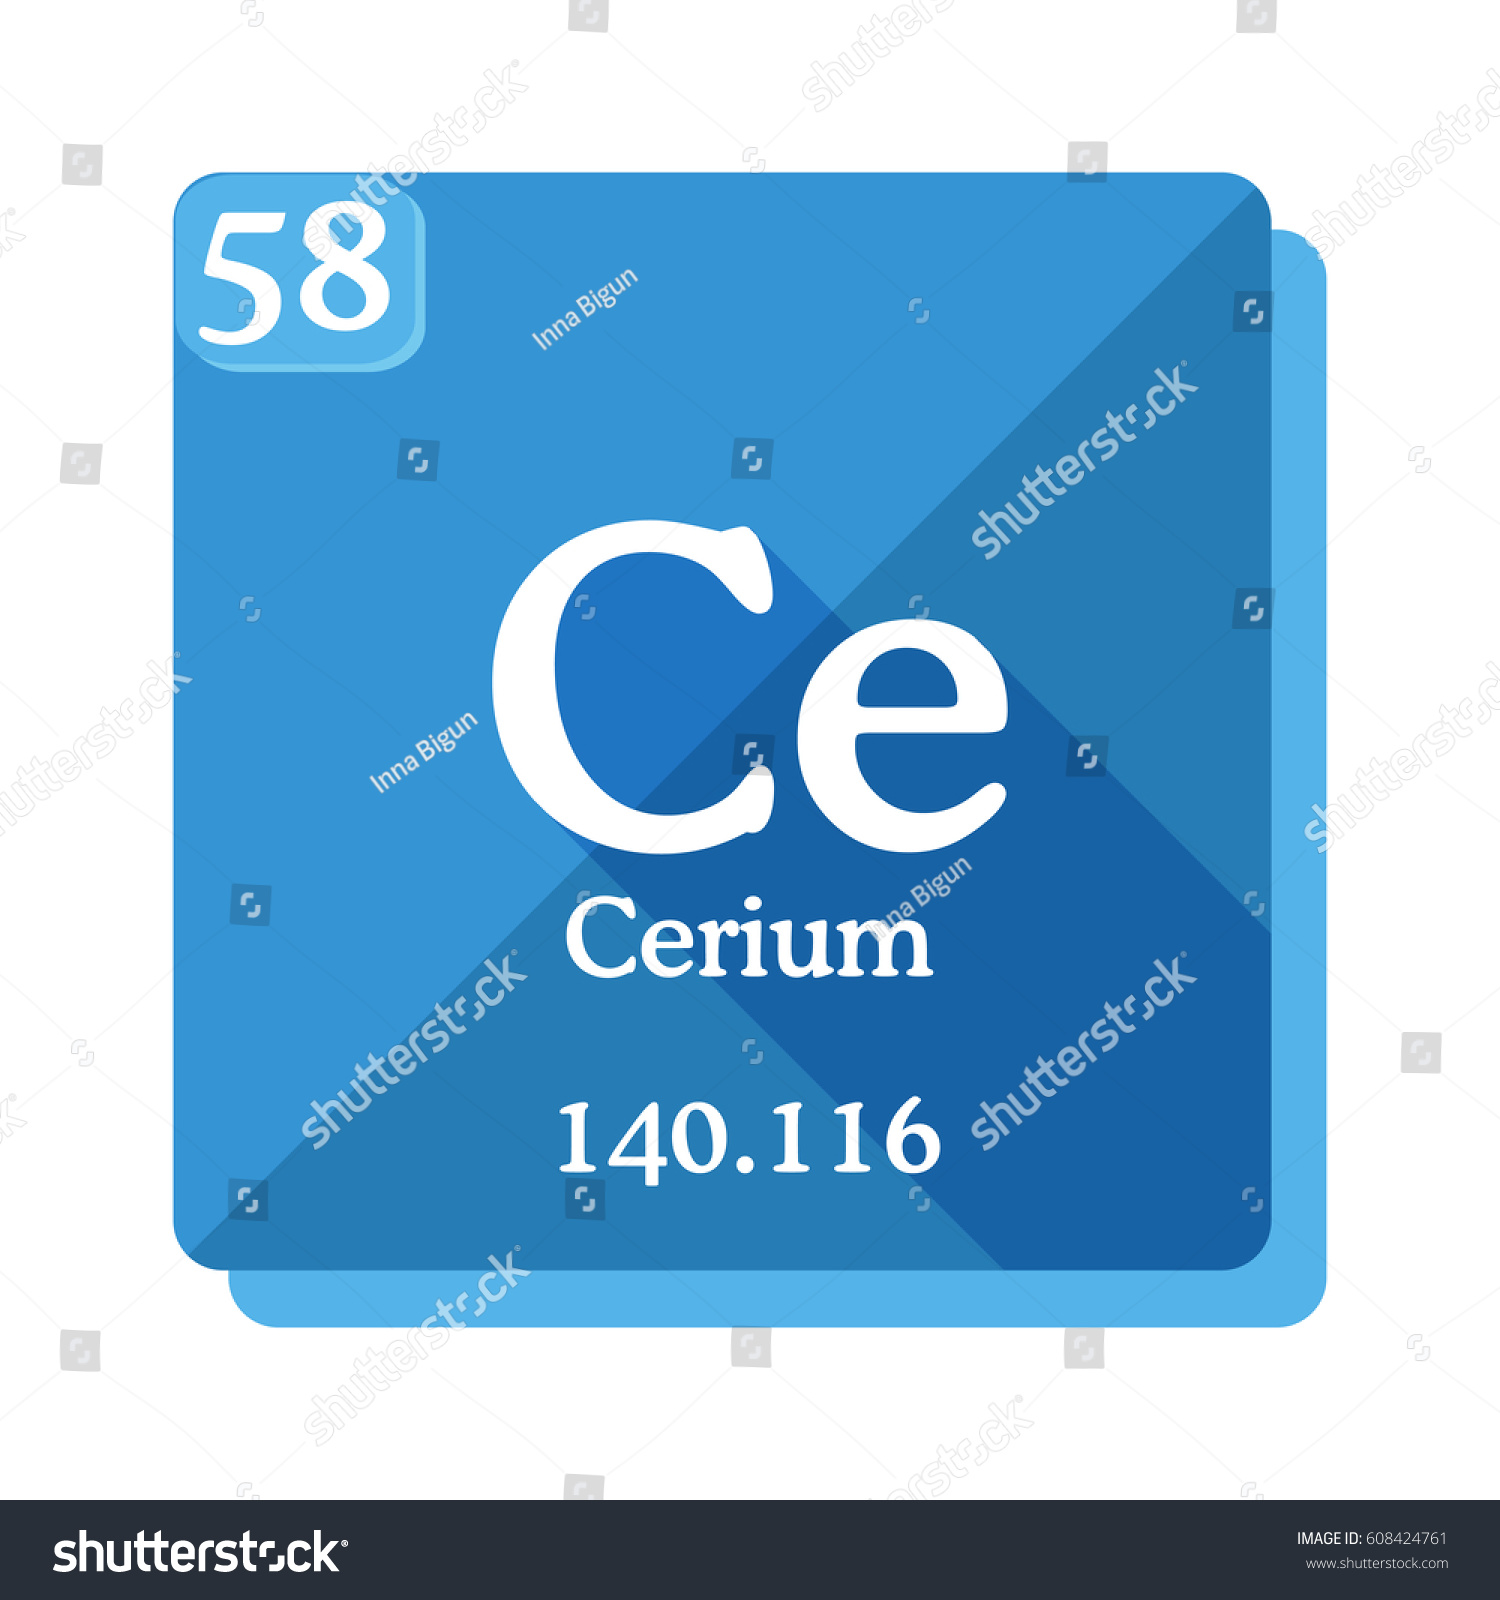 Ce element periodic table choice image periodic table images ce element periodic table choice image periodic table images ce element periodic table images periodic table gamestrikefo Images